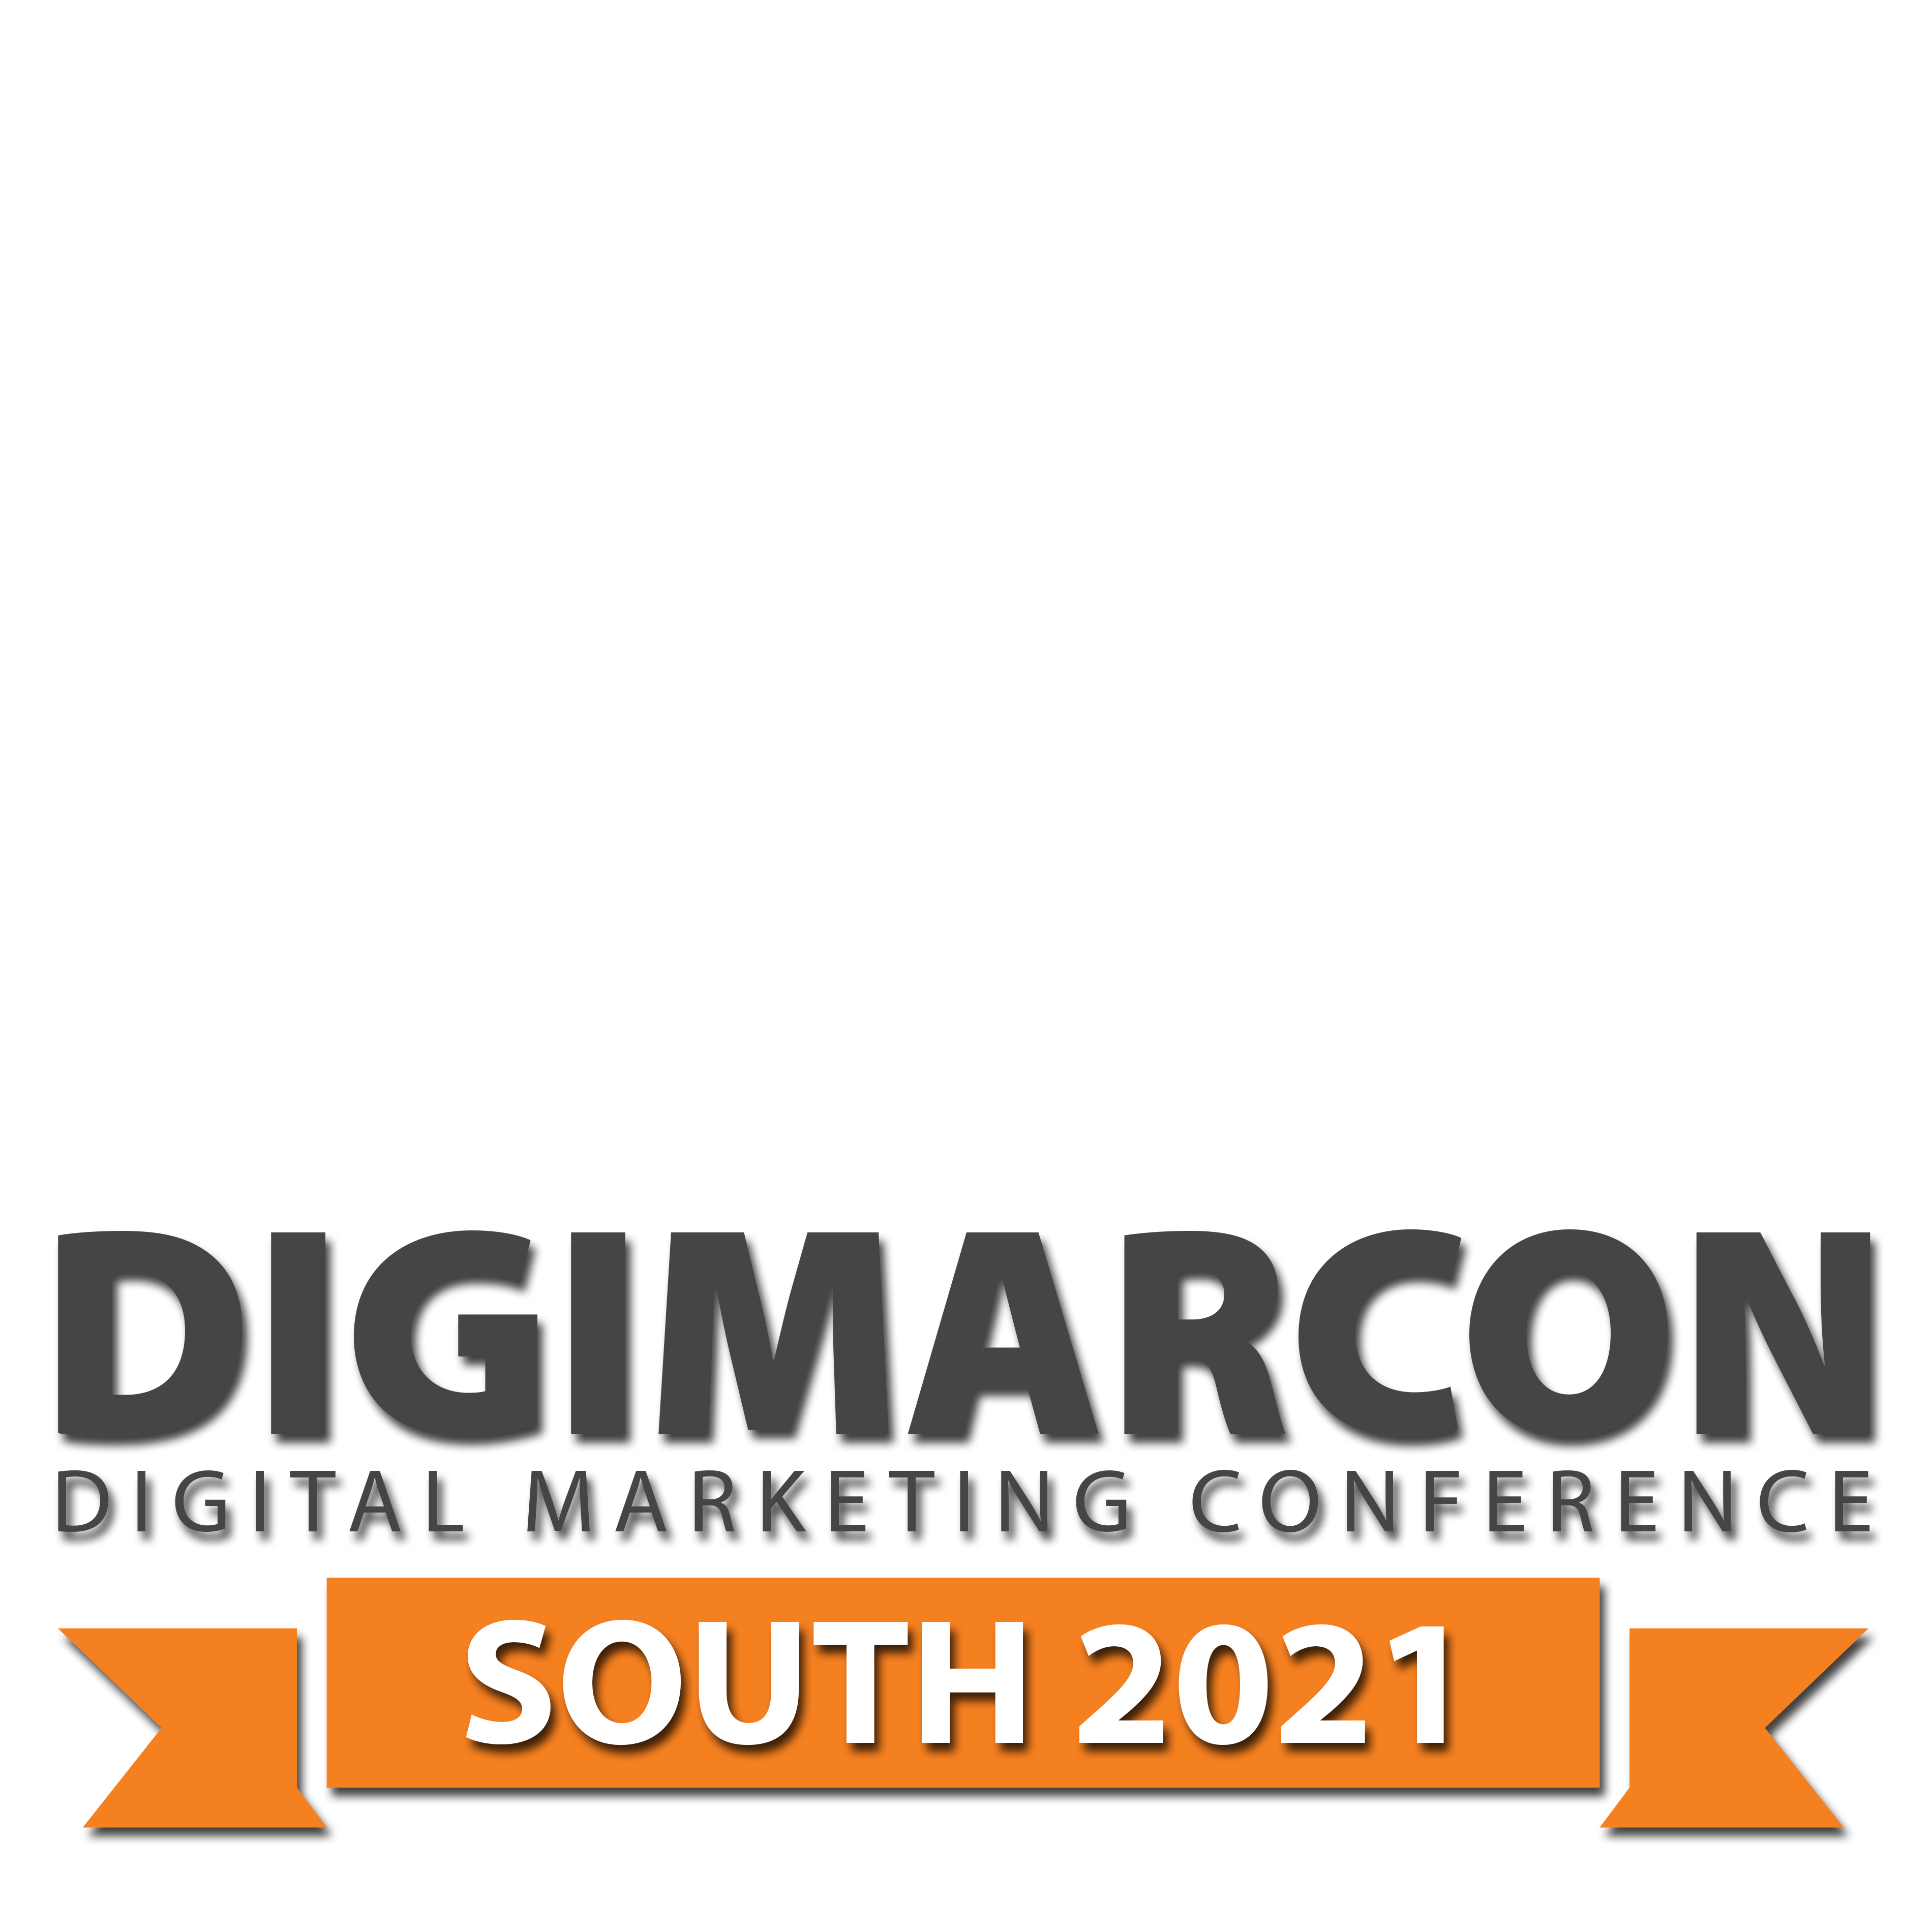 DigiMarCon South 2021 – Digital Marketing Conference & Exhibition